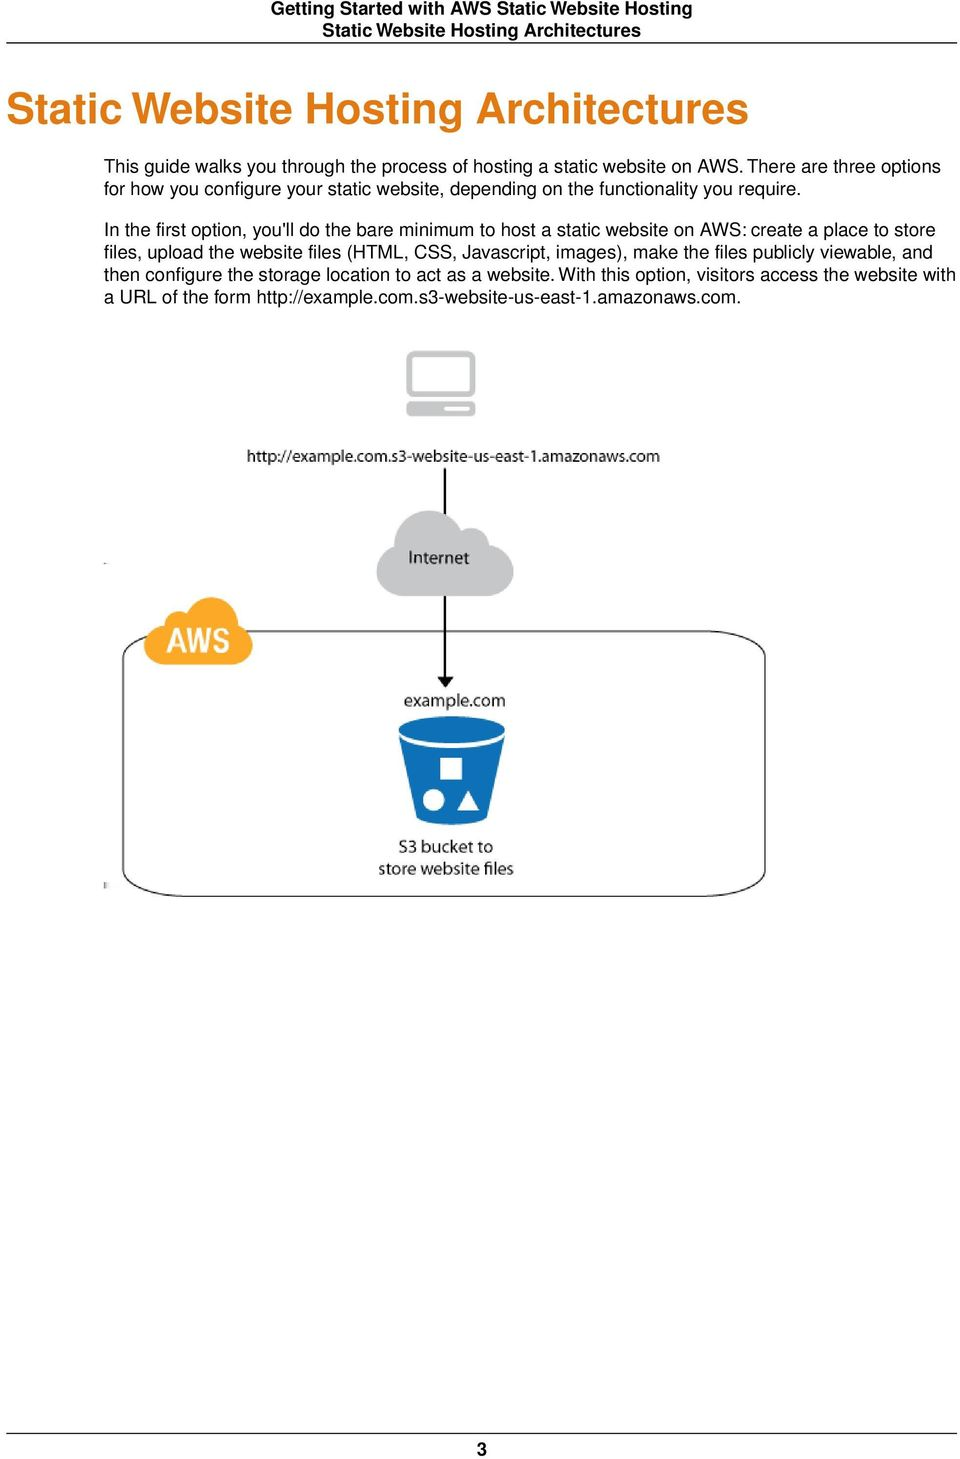 Getting Started with AWS  Static Website Hosting - PDF